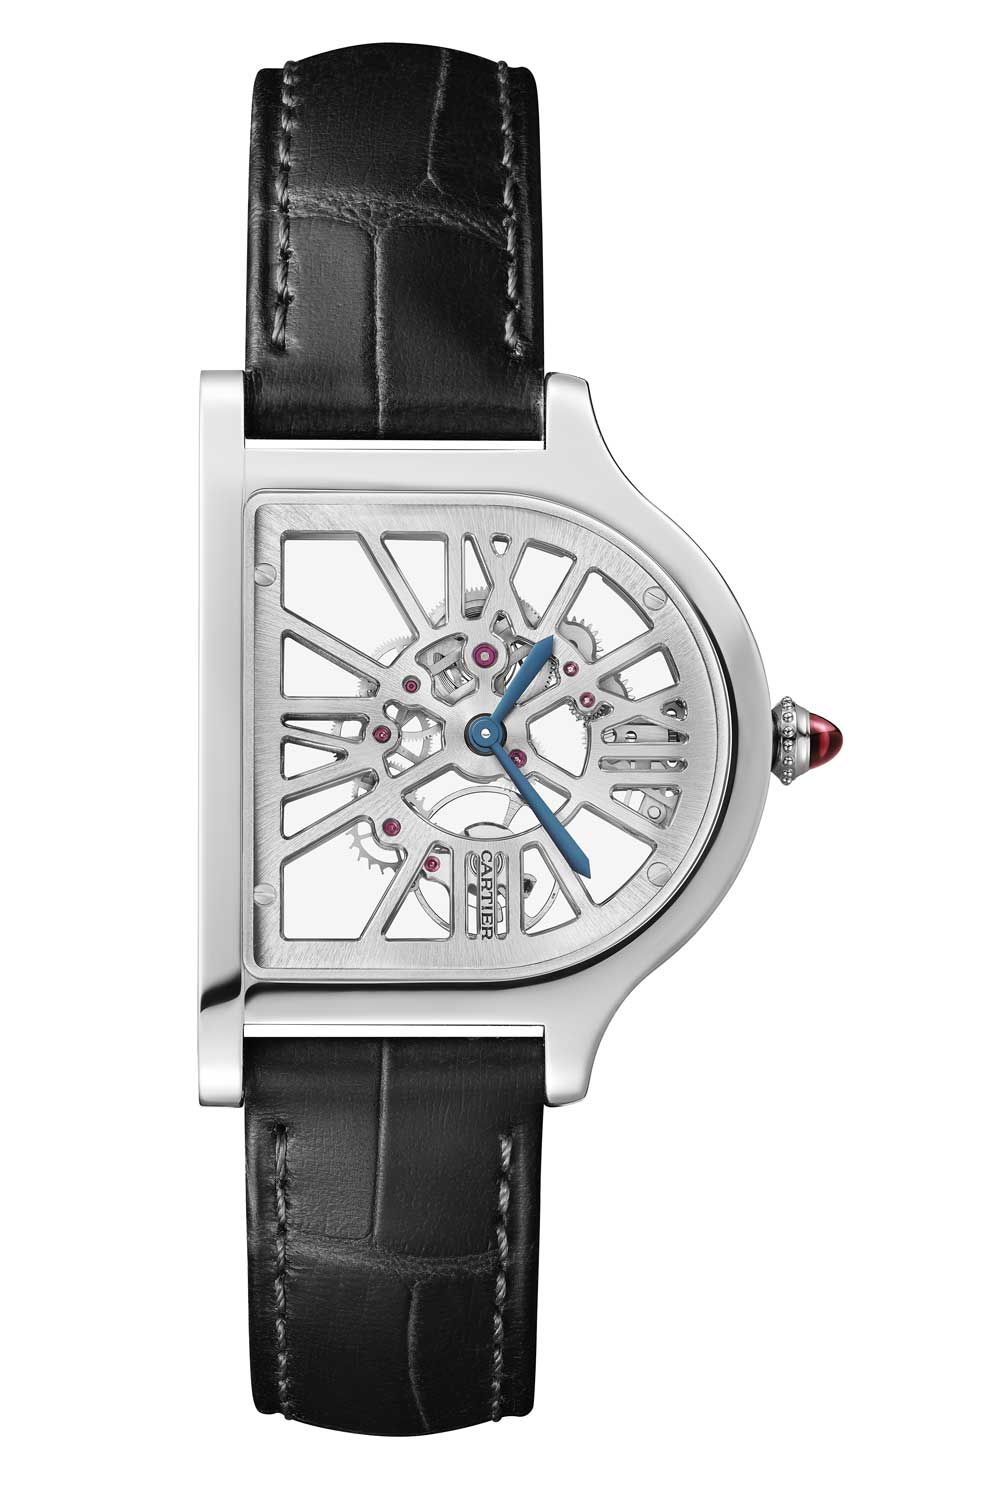 The Cloche also comes in three skeletonized versions — in pink gold, platinum, and platinum with diamonds — where the bridges of the movement also serve as the stylized indices